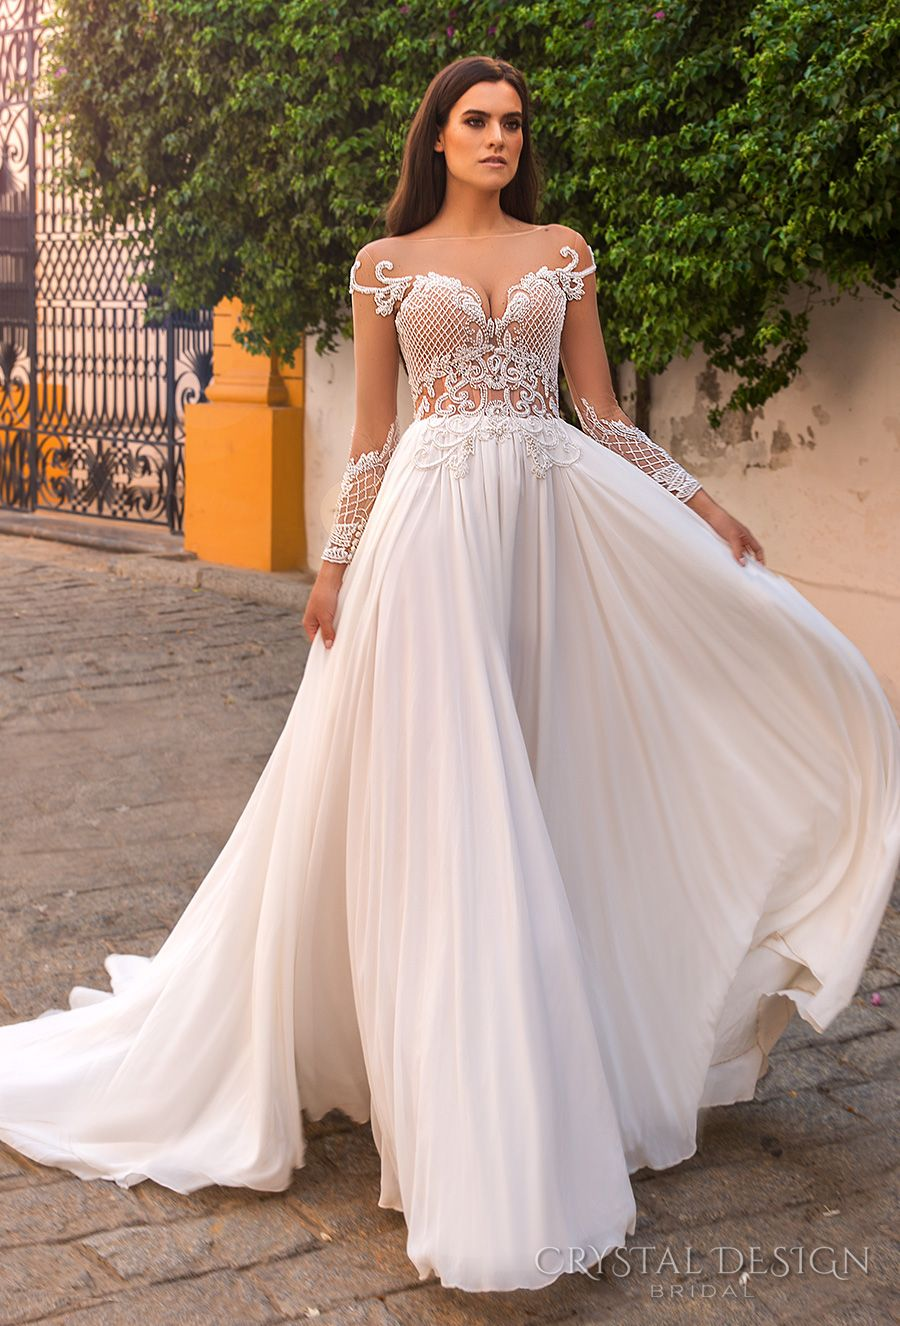 Crystal Design 2017 Bridal Long Sleeves Illusion Bateau Neckline Heavily Embroidered Bodice Lace Flowy Skirt A Line Wedding Dress Open Back Chapel